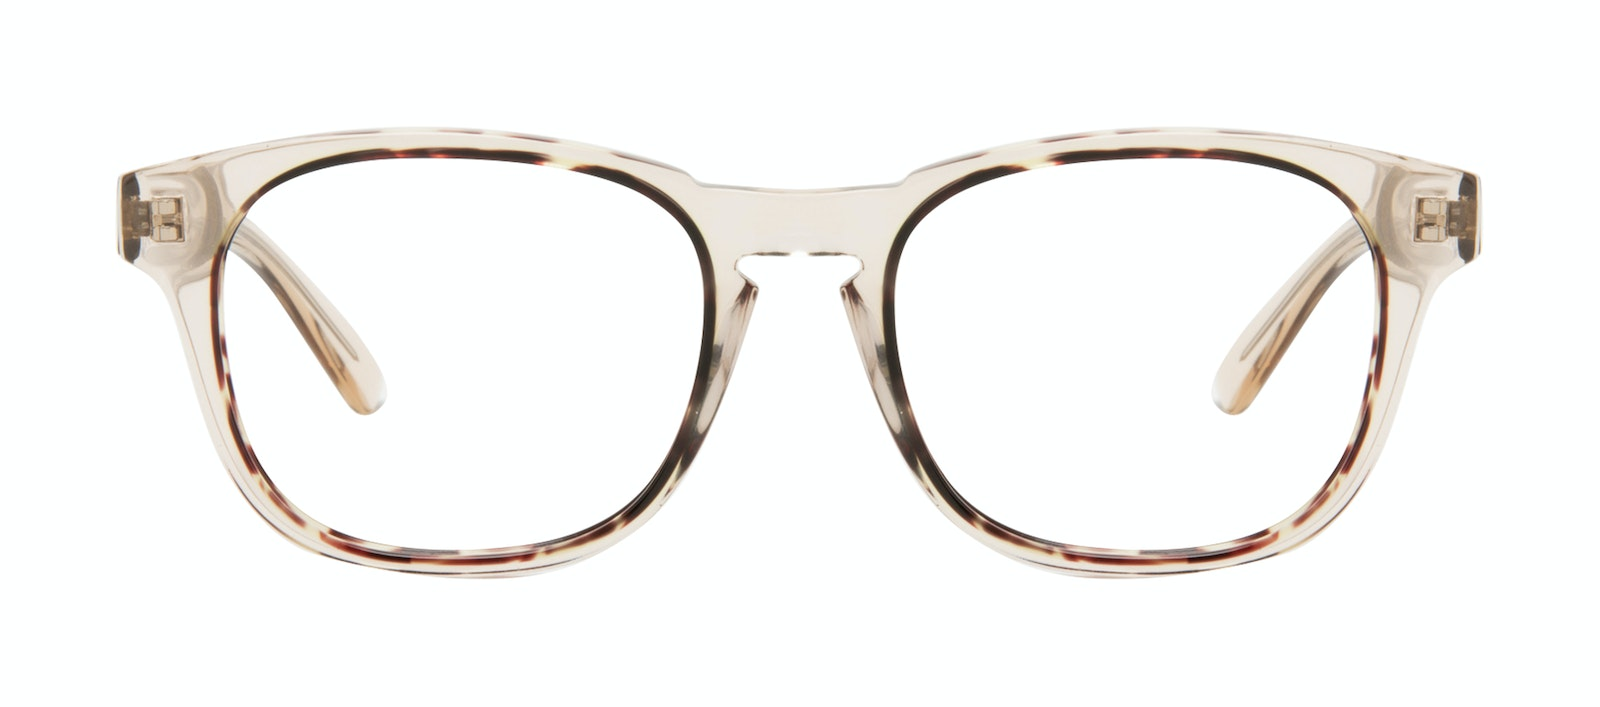 Affordable Fashion Glasses Square Eyeglasses Men Outline Golden Tort Front